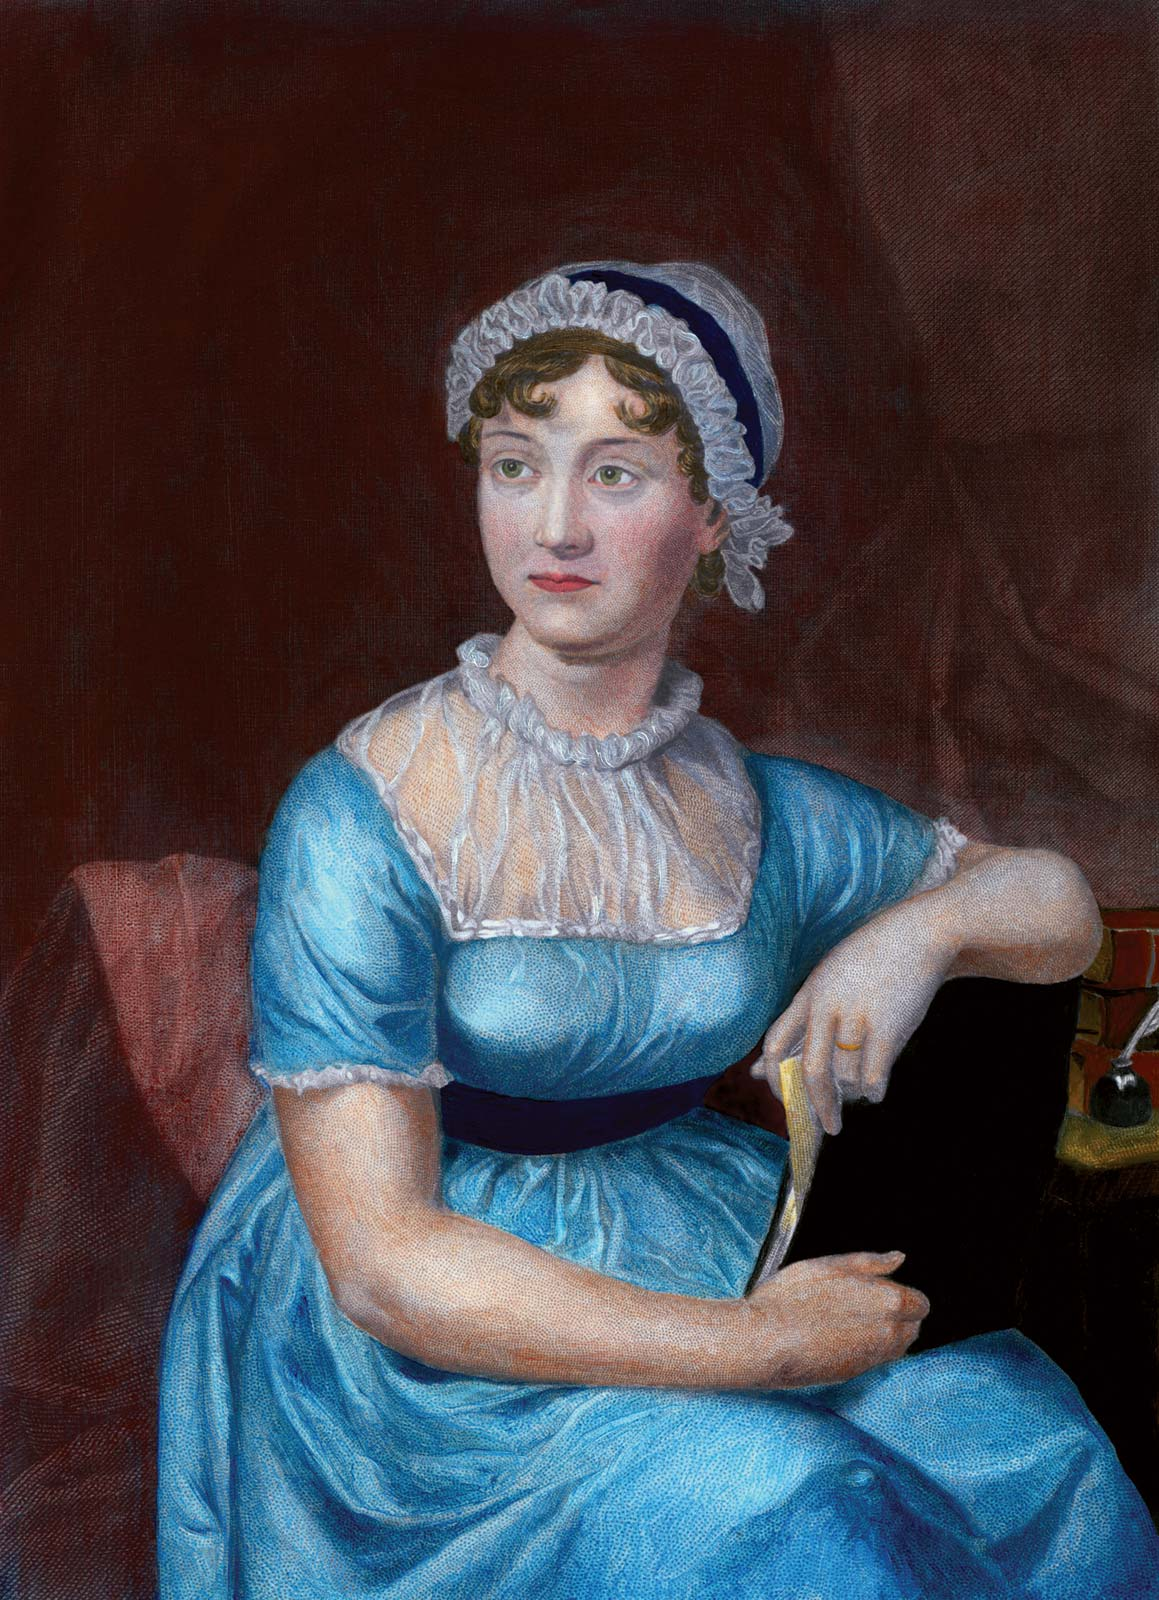 f71b0522bddeabe47c55c8263e92dbc1 - When the Going Gets Tough, Readers Go to Jane Austen